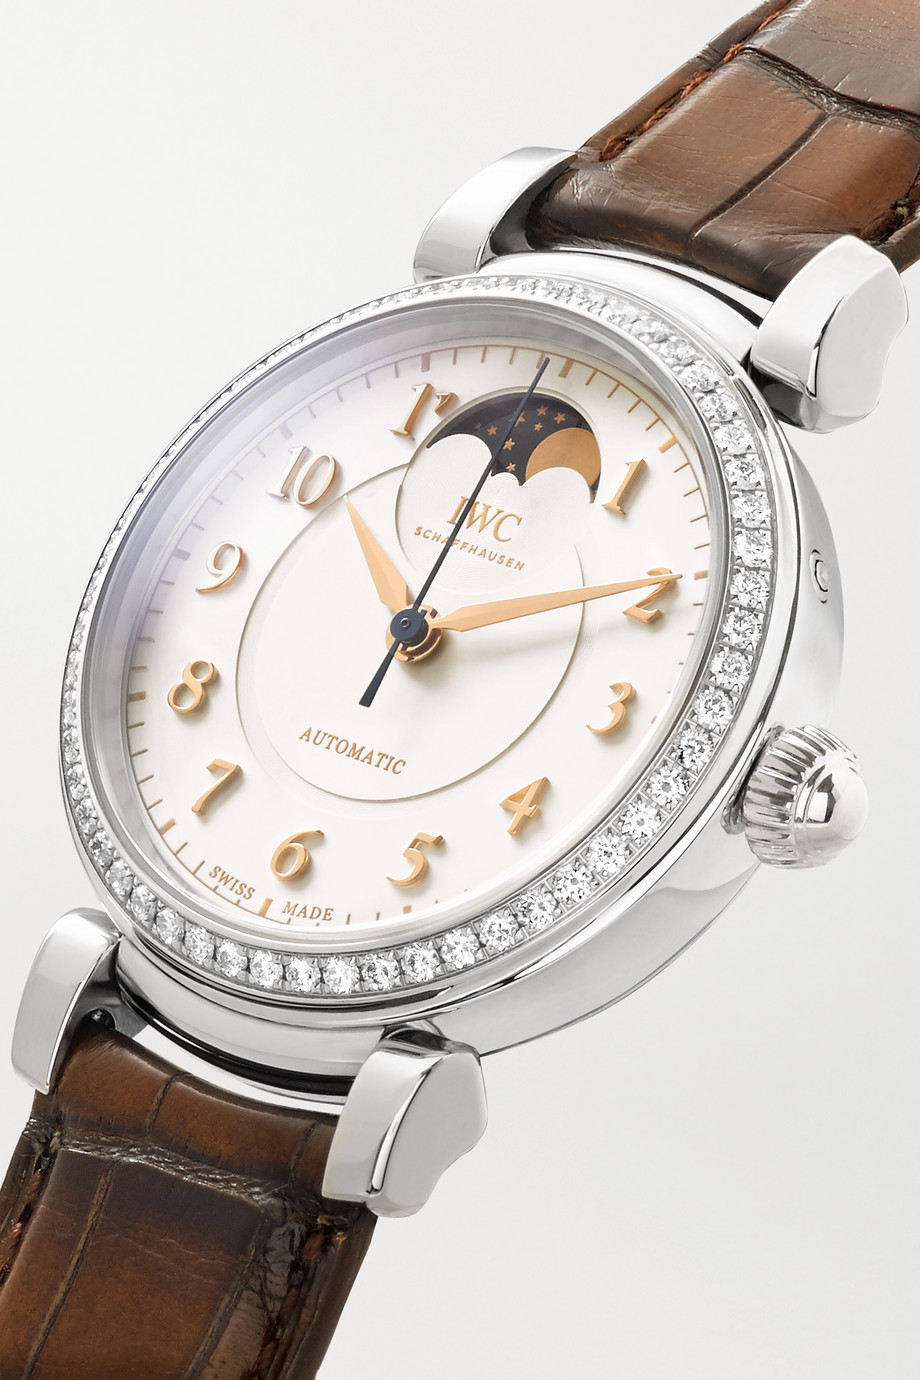 IWC SCHAFFHAUSEN Da Vinci Automatic Moon Phase 36mm stainless steel, alligator and diamond watch